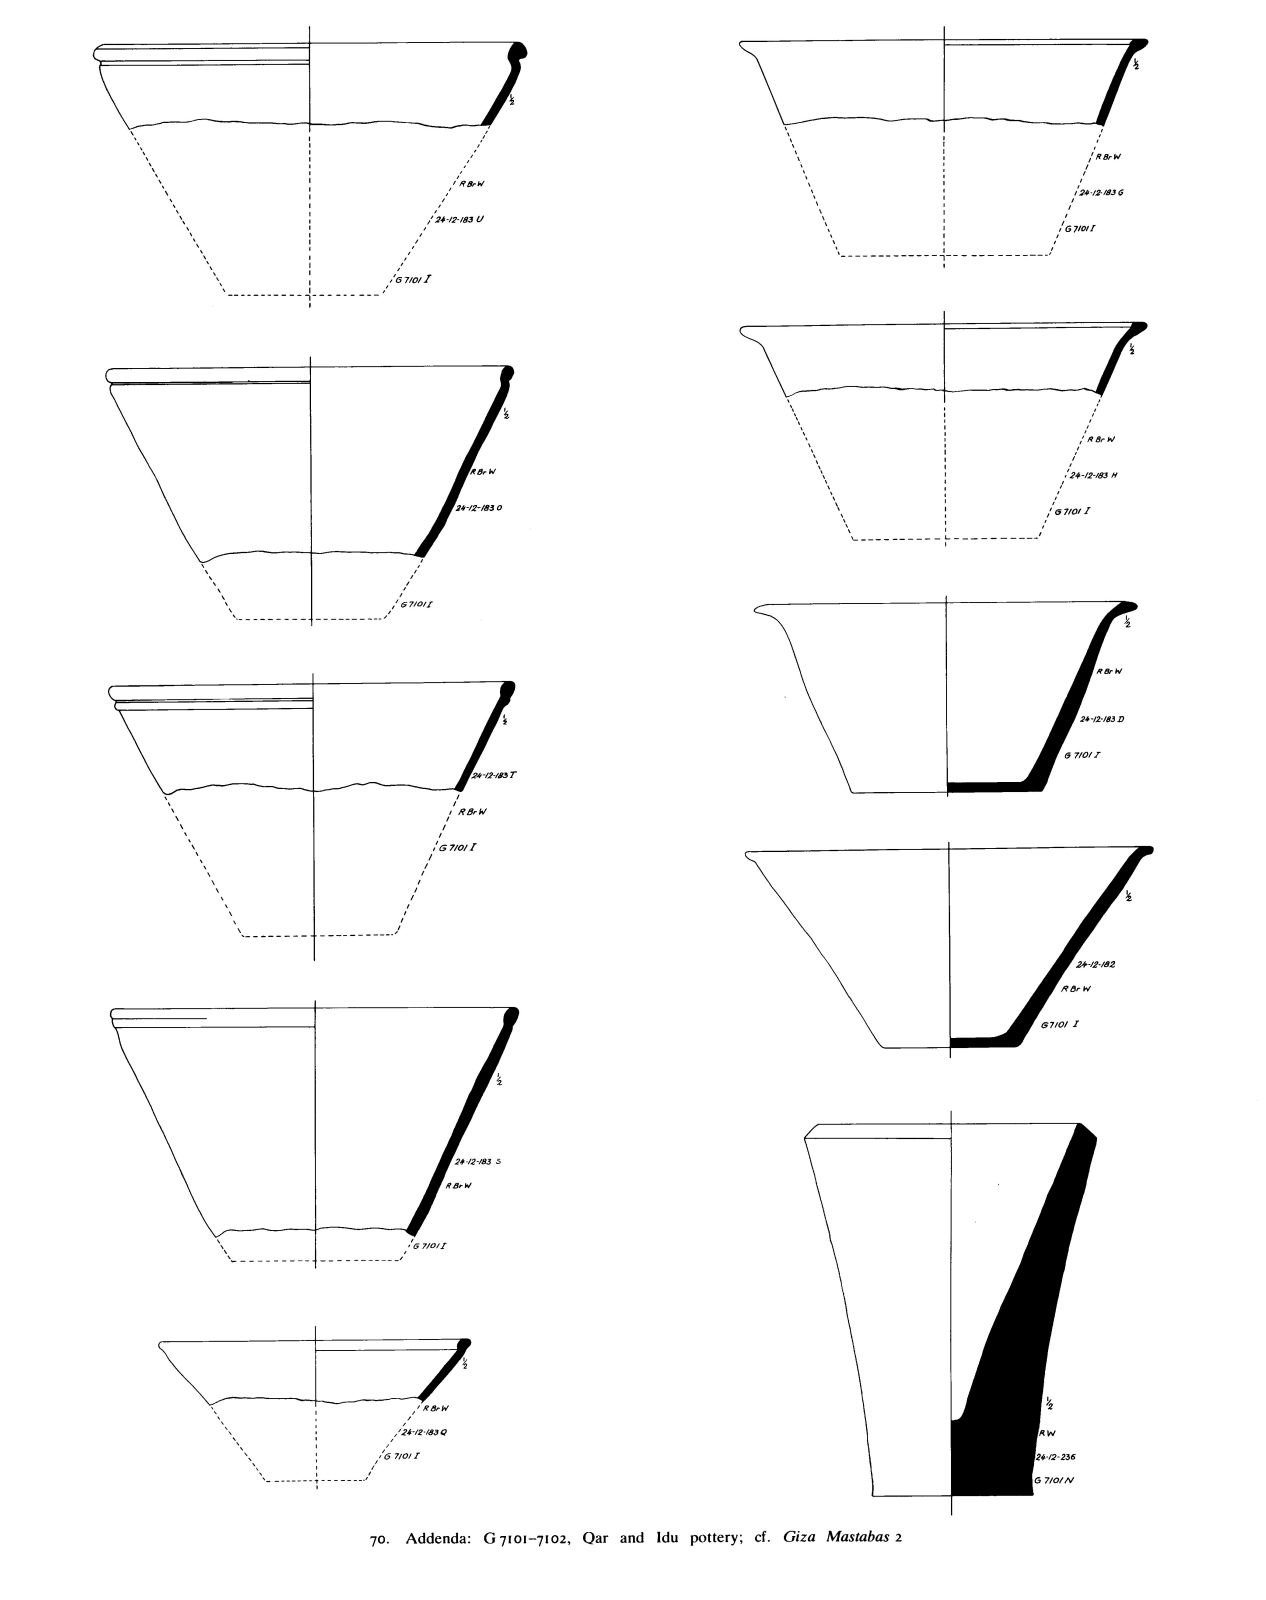 Drawings: G 7101: pottery